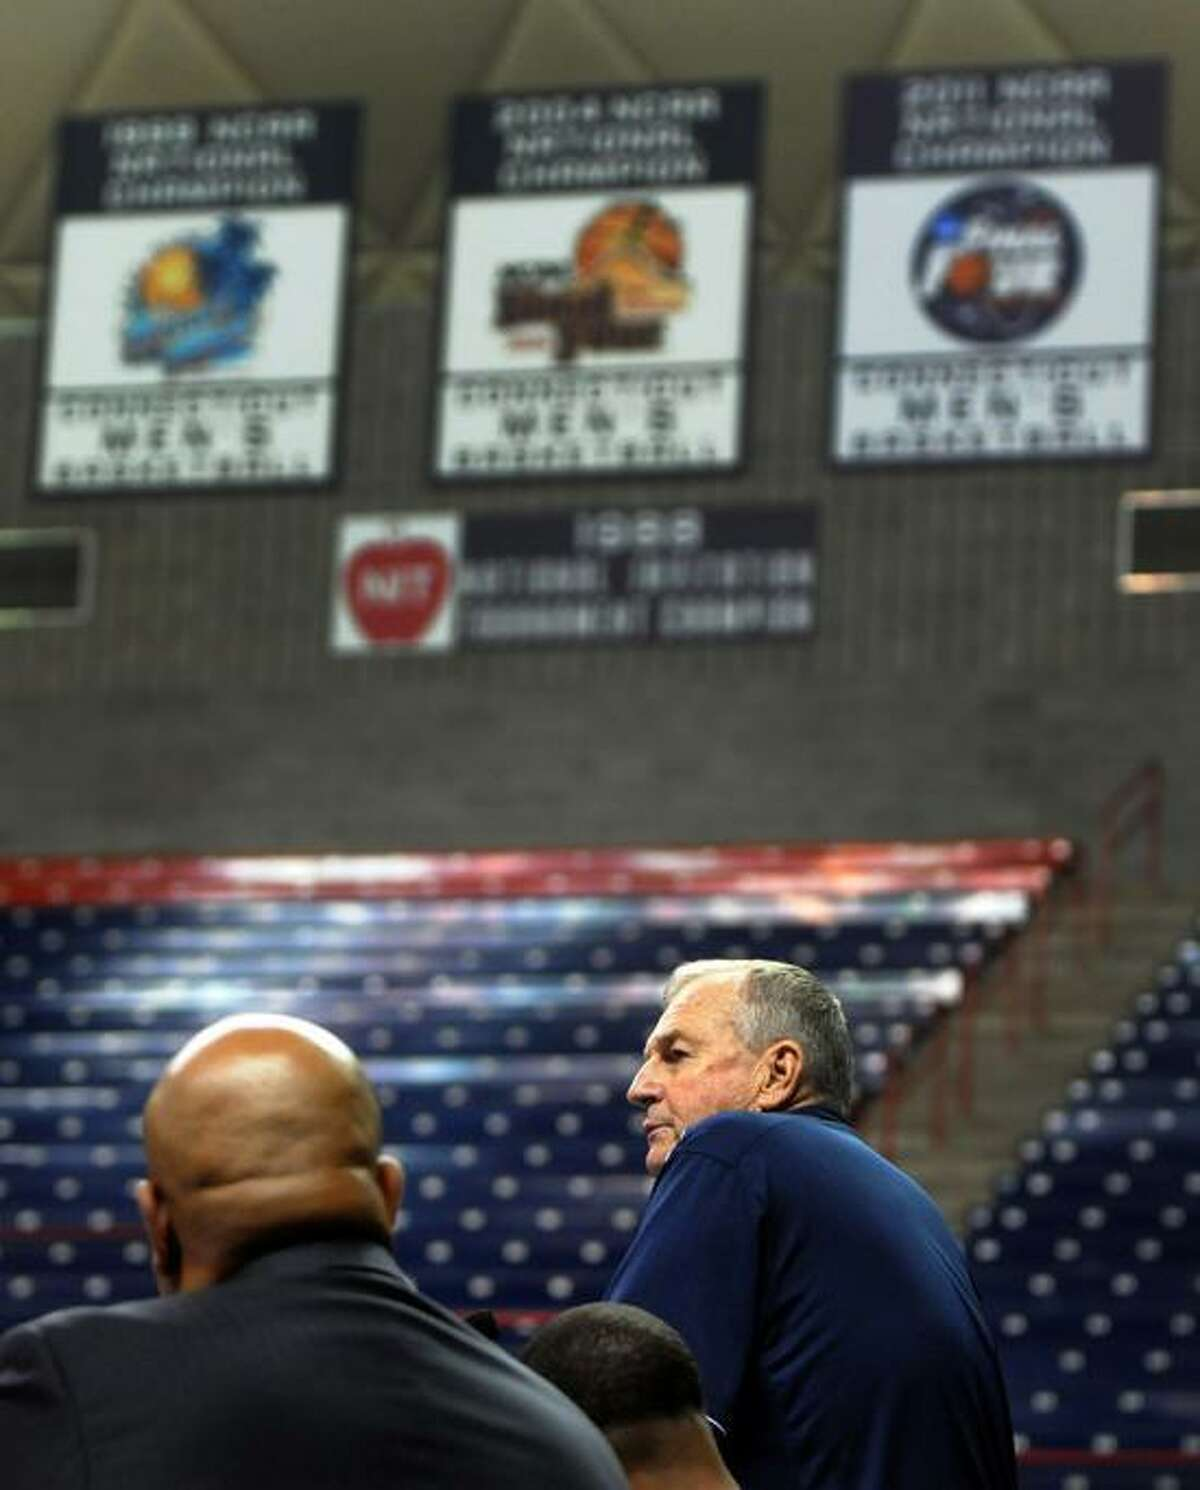 With three NCAA national championship banners hanging from the ceiling of Gampel Pavilion that were won under his tutelage, University of Connecticut Men's Basketball coach Jim Calhoun announces his retirement during a press conference September 13, 2012 at Gampel Pavilion on UConn's main campus in Storrs, Connecticut. Sitting next to Calhoun are Warde Manuel UConn Director of Athletics, left, and new UConn basketball coach Kevin Ollie, second from left. Photo by Peter Hvizdak / New Haven Register